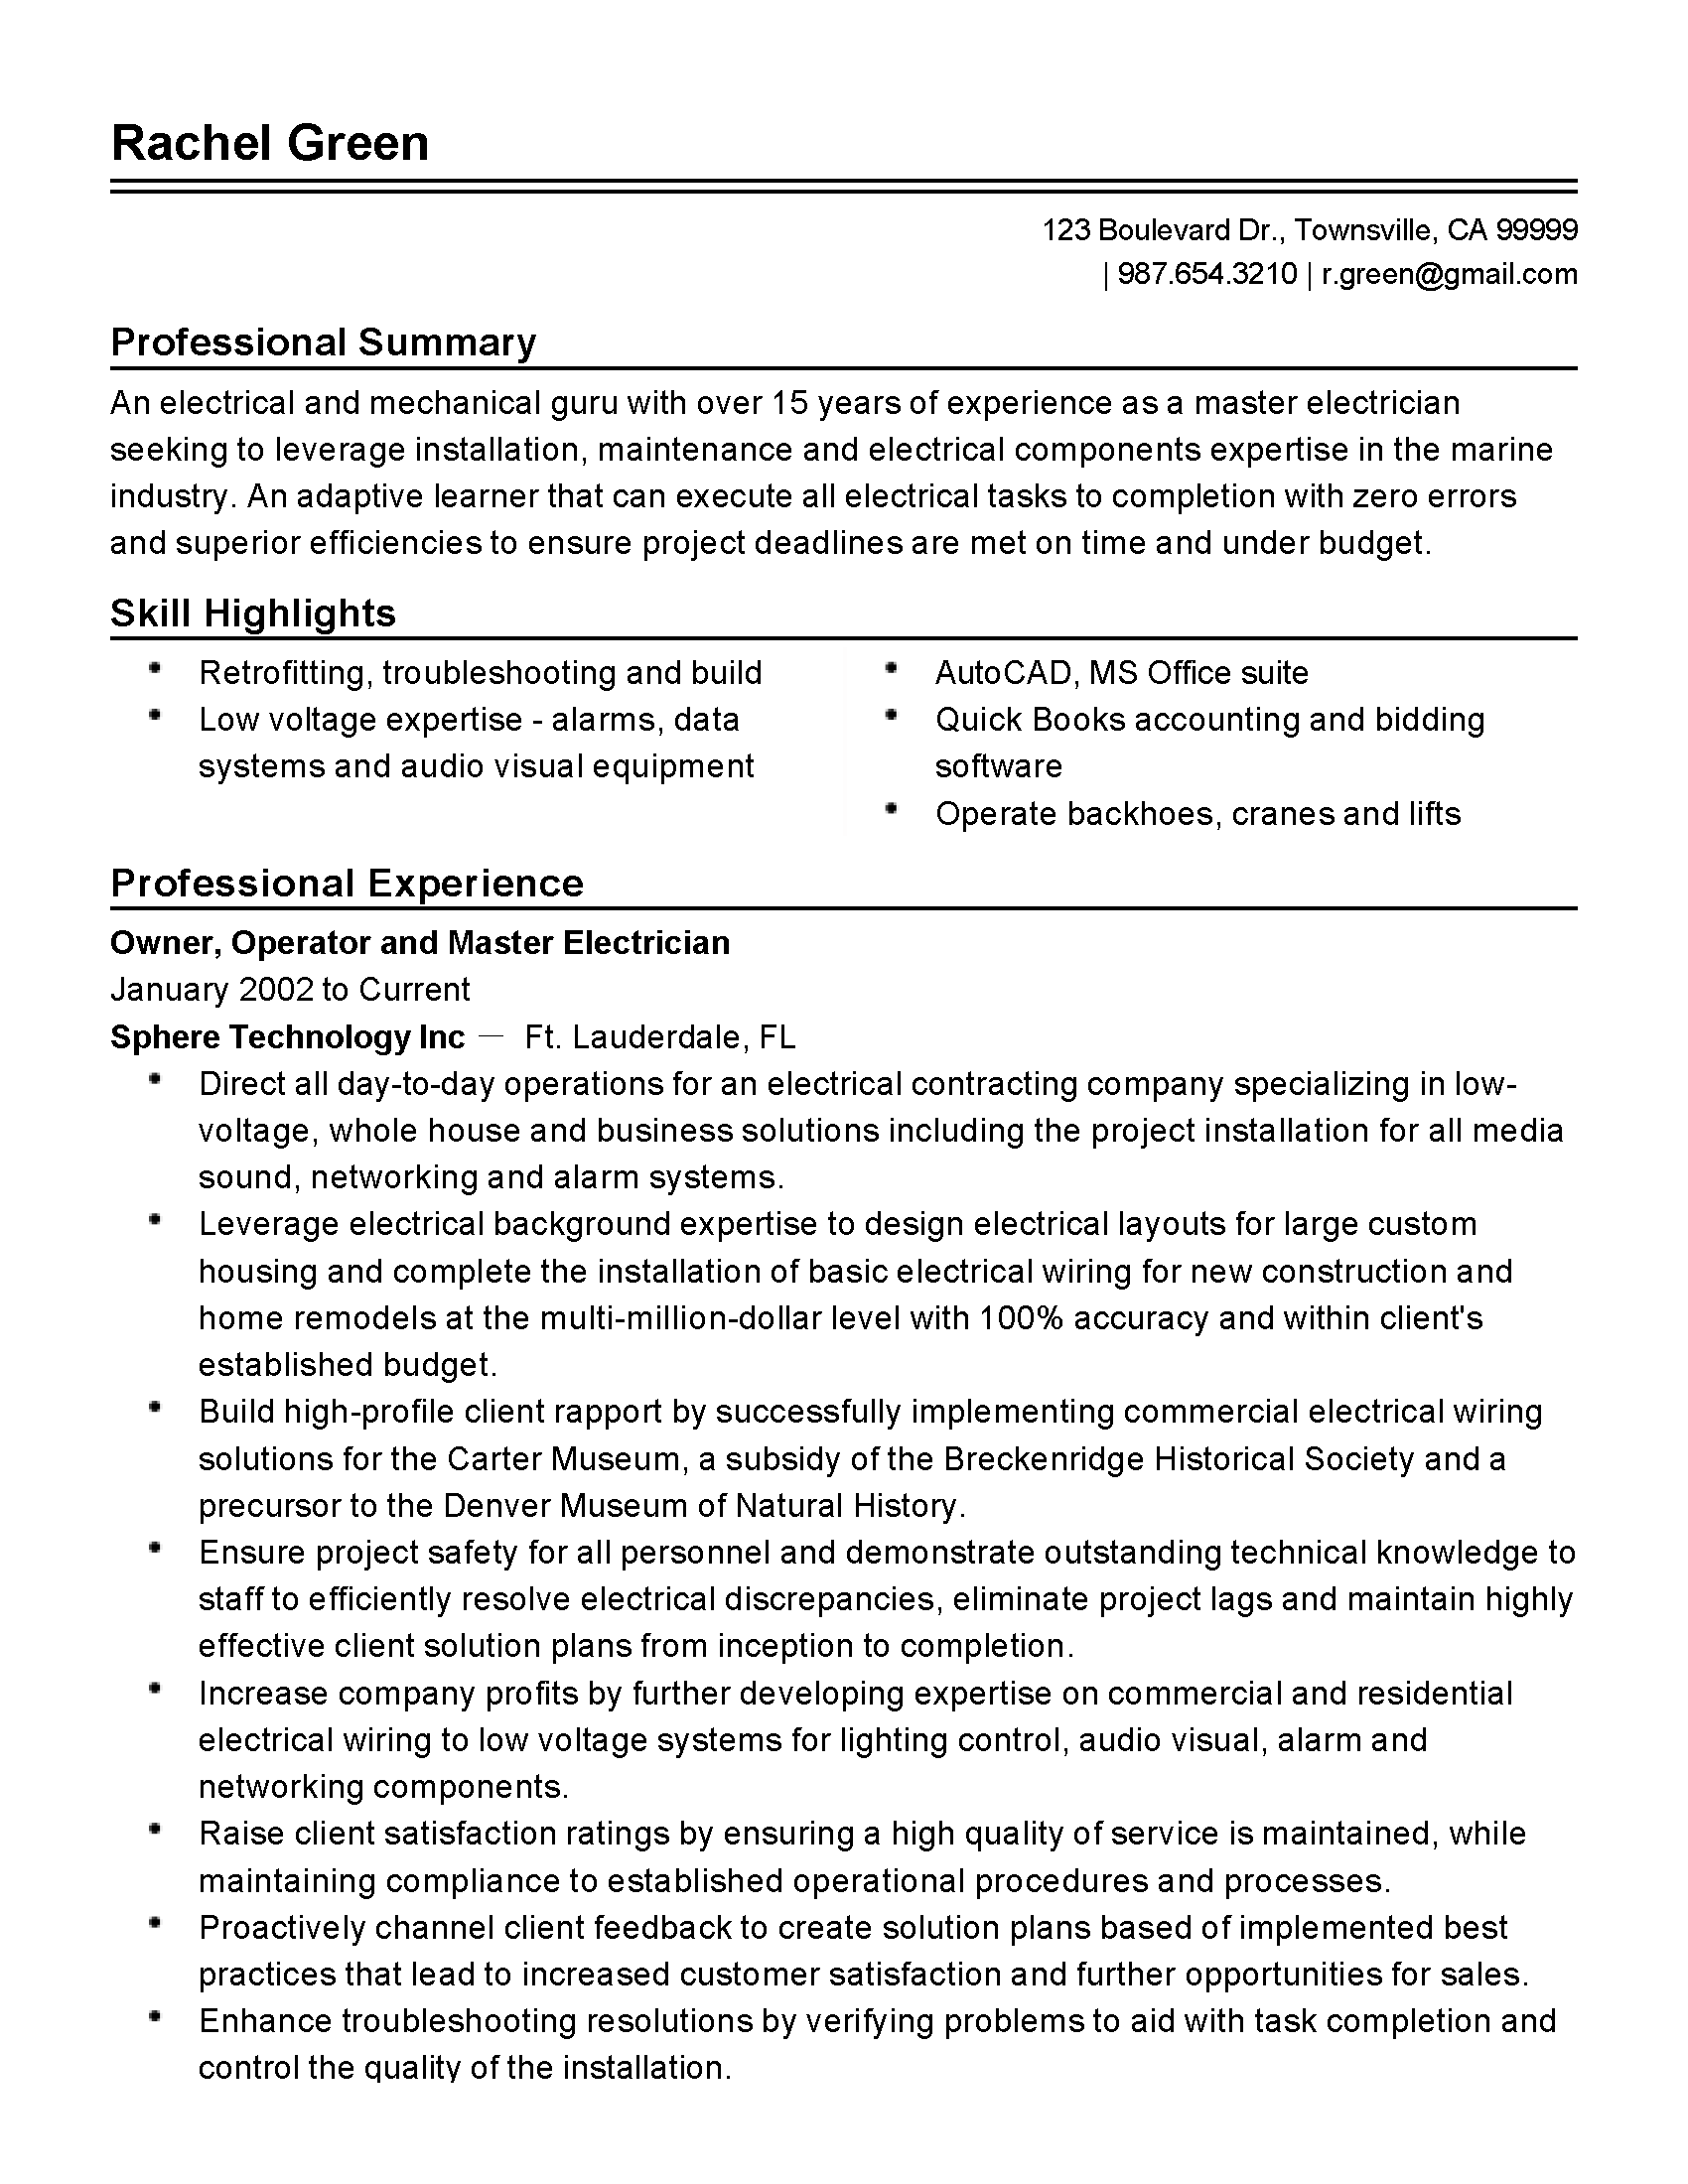 resume examples 2019 in 2020 (With images) Resume